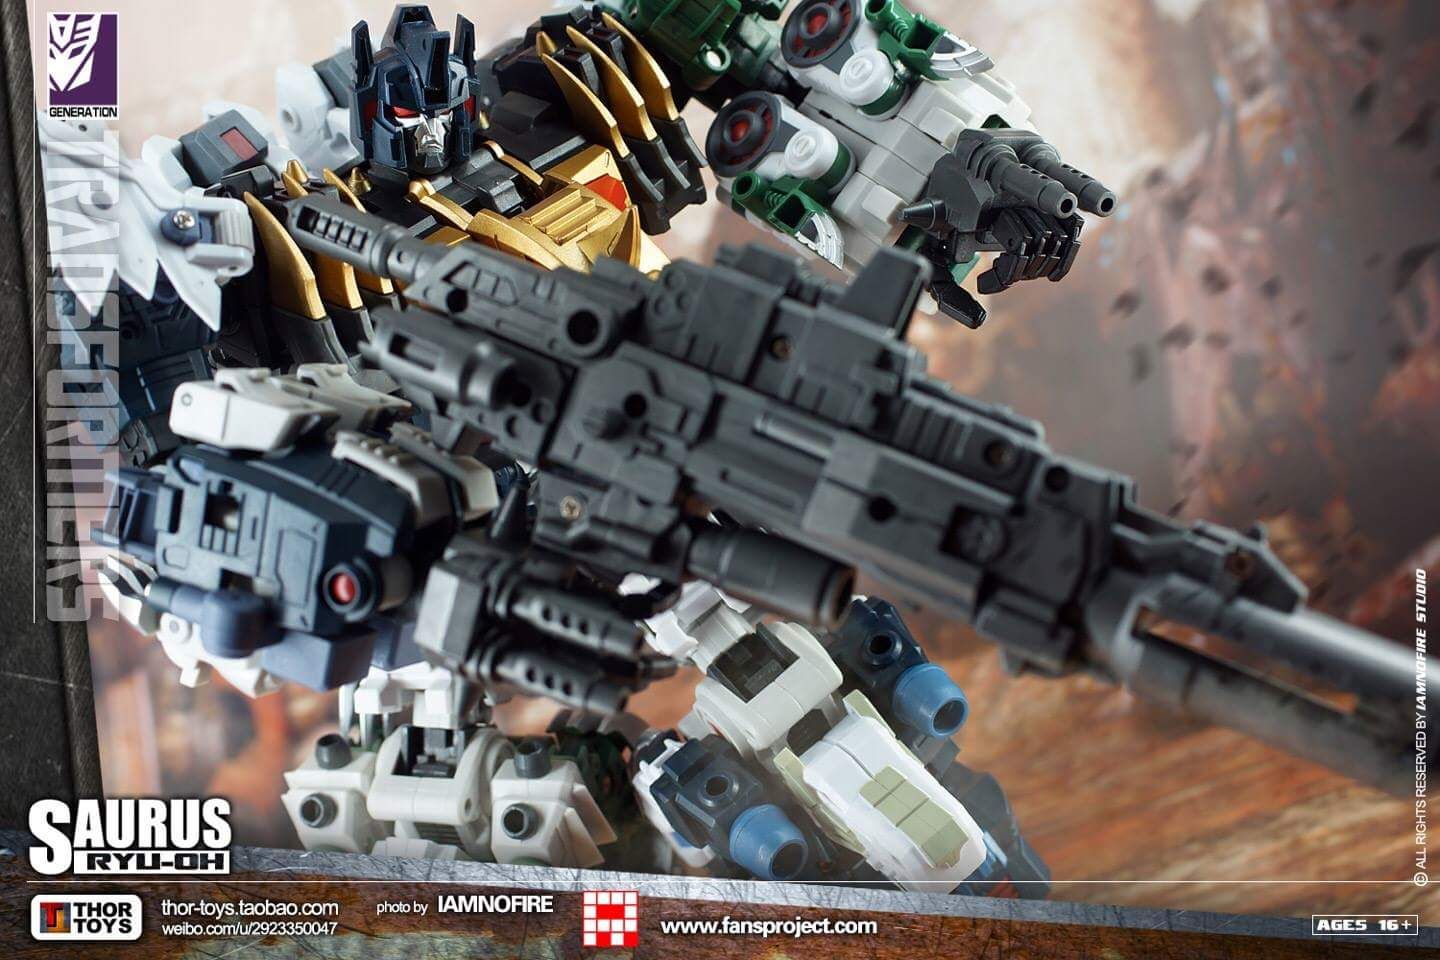 [FansProject] Produit Tiers - Jouet Saurus Ryu-oh aka Dinoking (Victory) | Monstructor (USA) - Page 2 8LhVkHuW